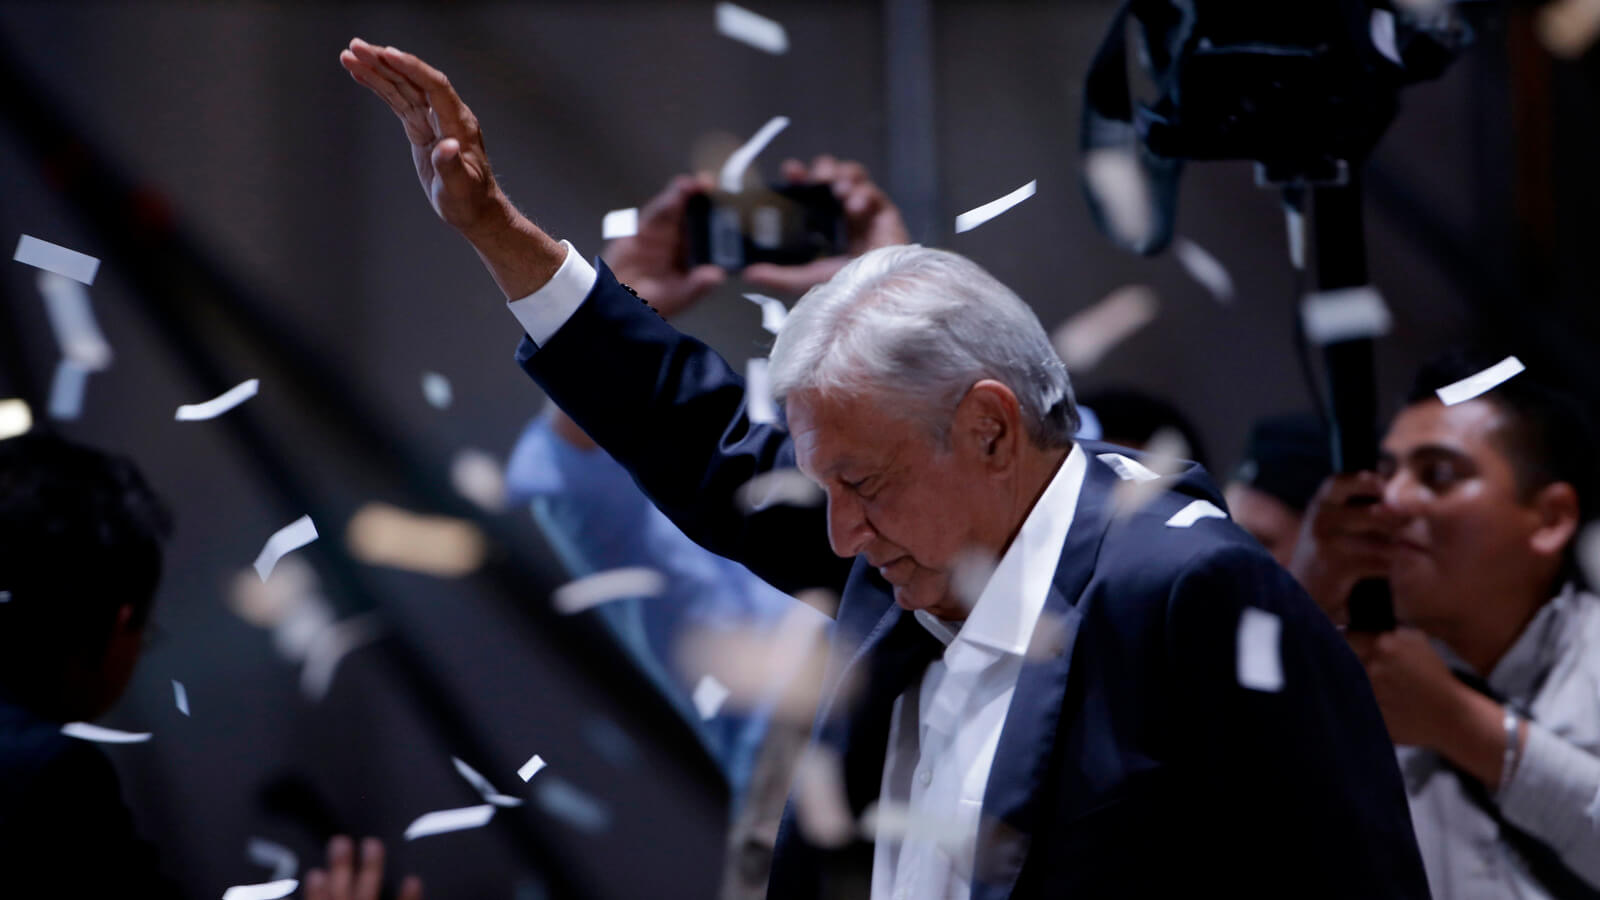 Obrador Is on a Mission to Restore Mexico's Sovereignty